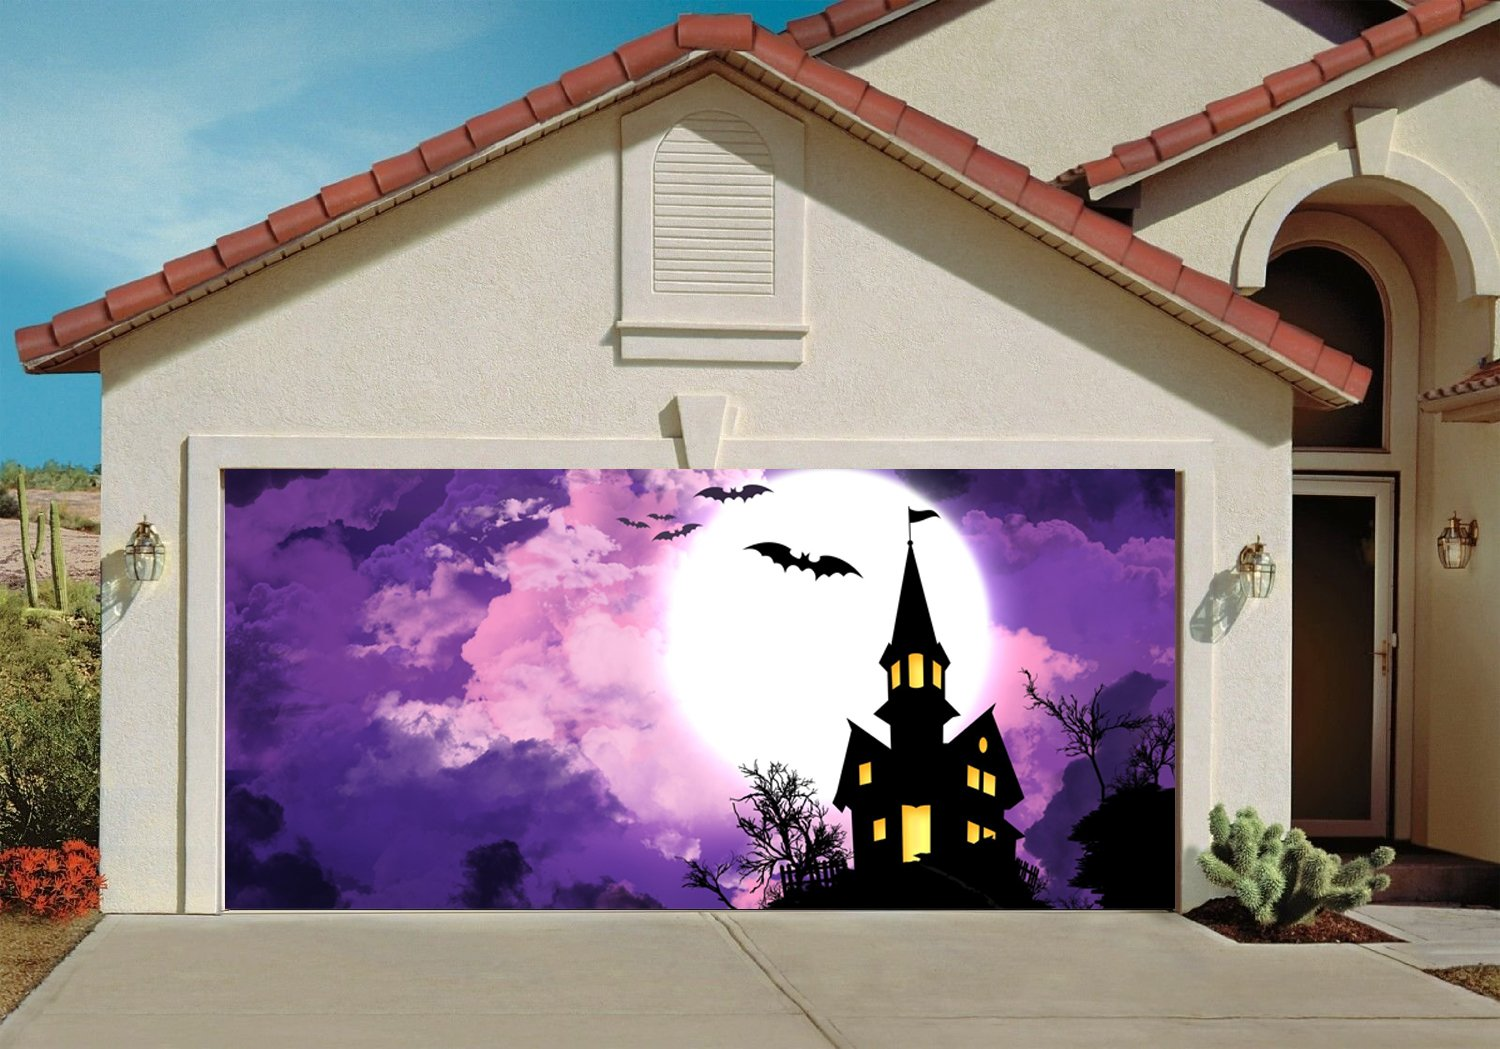 Amazon.com: Halloween Garage Door Cover Decor Bats Night Sky Moon ...